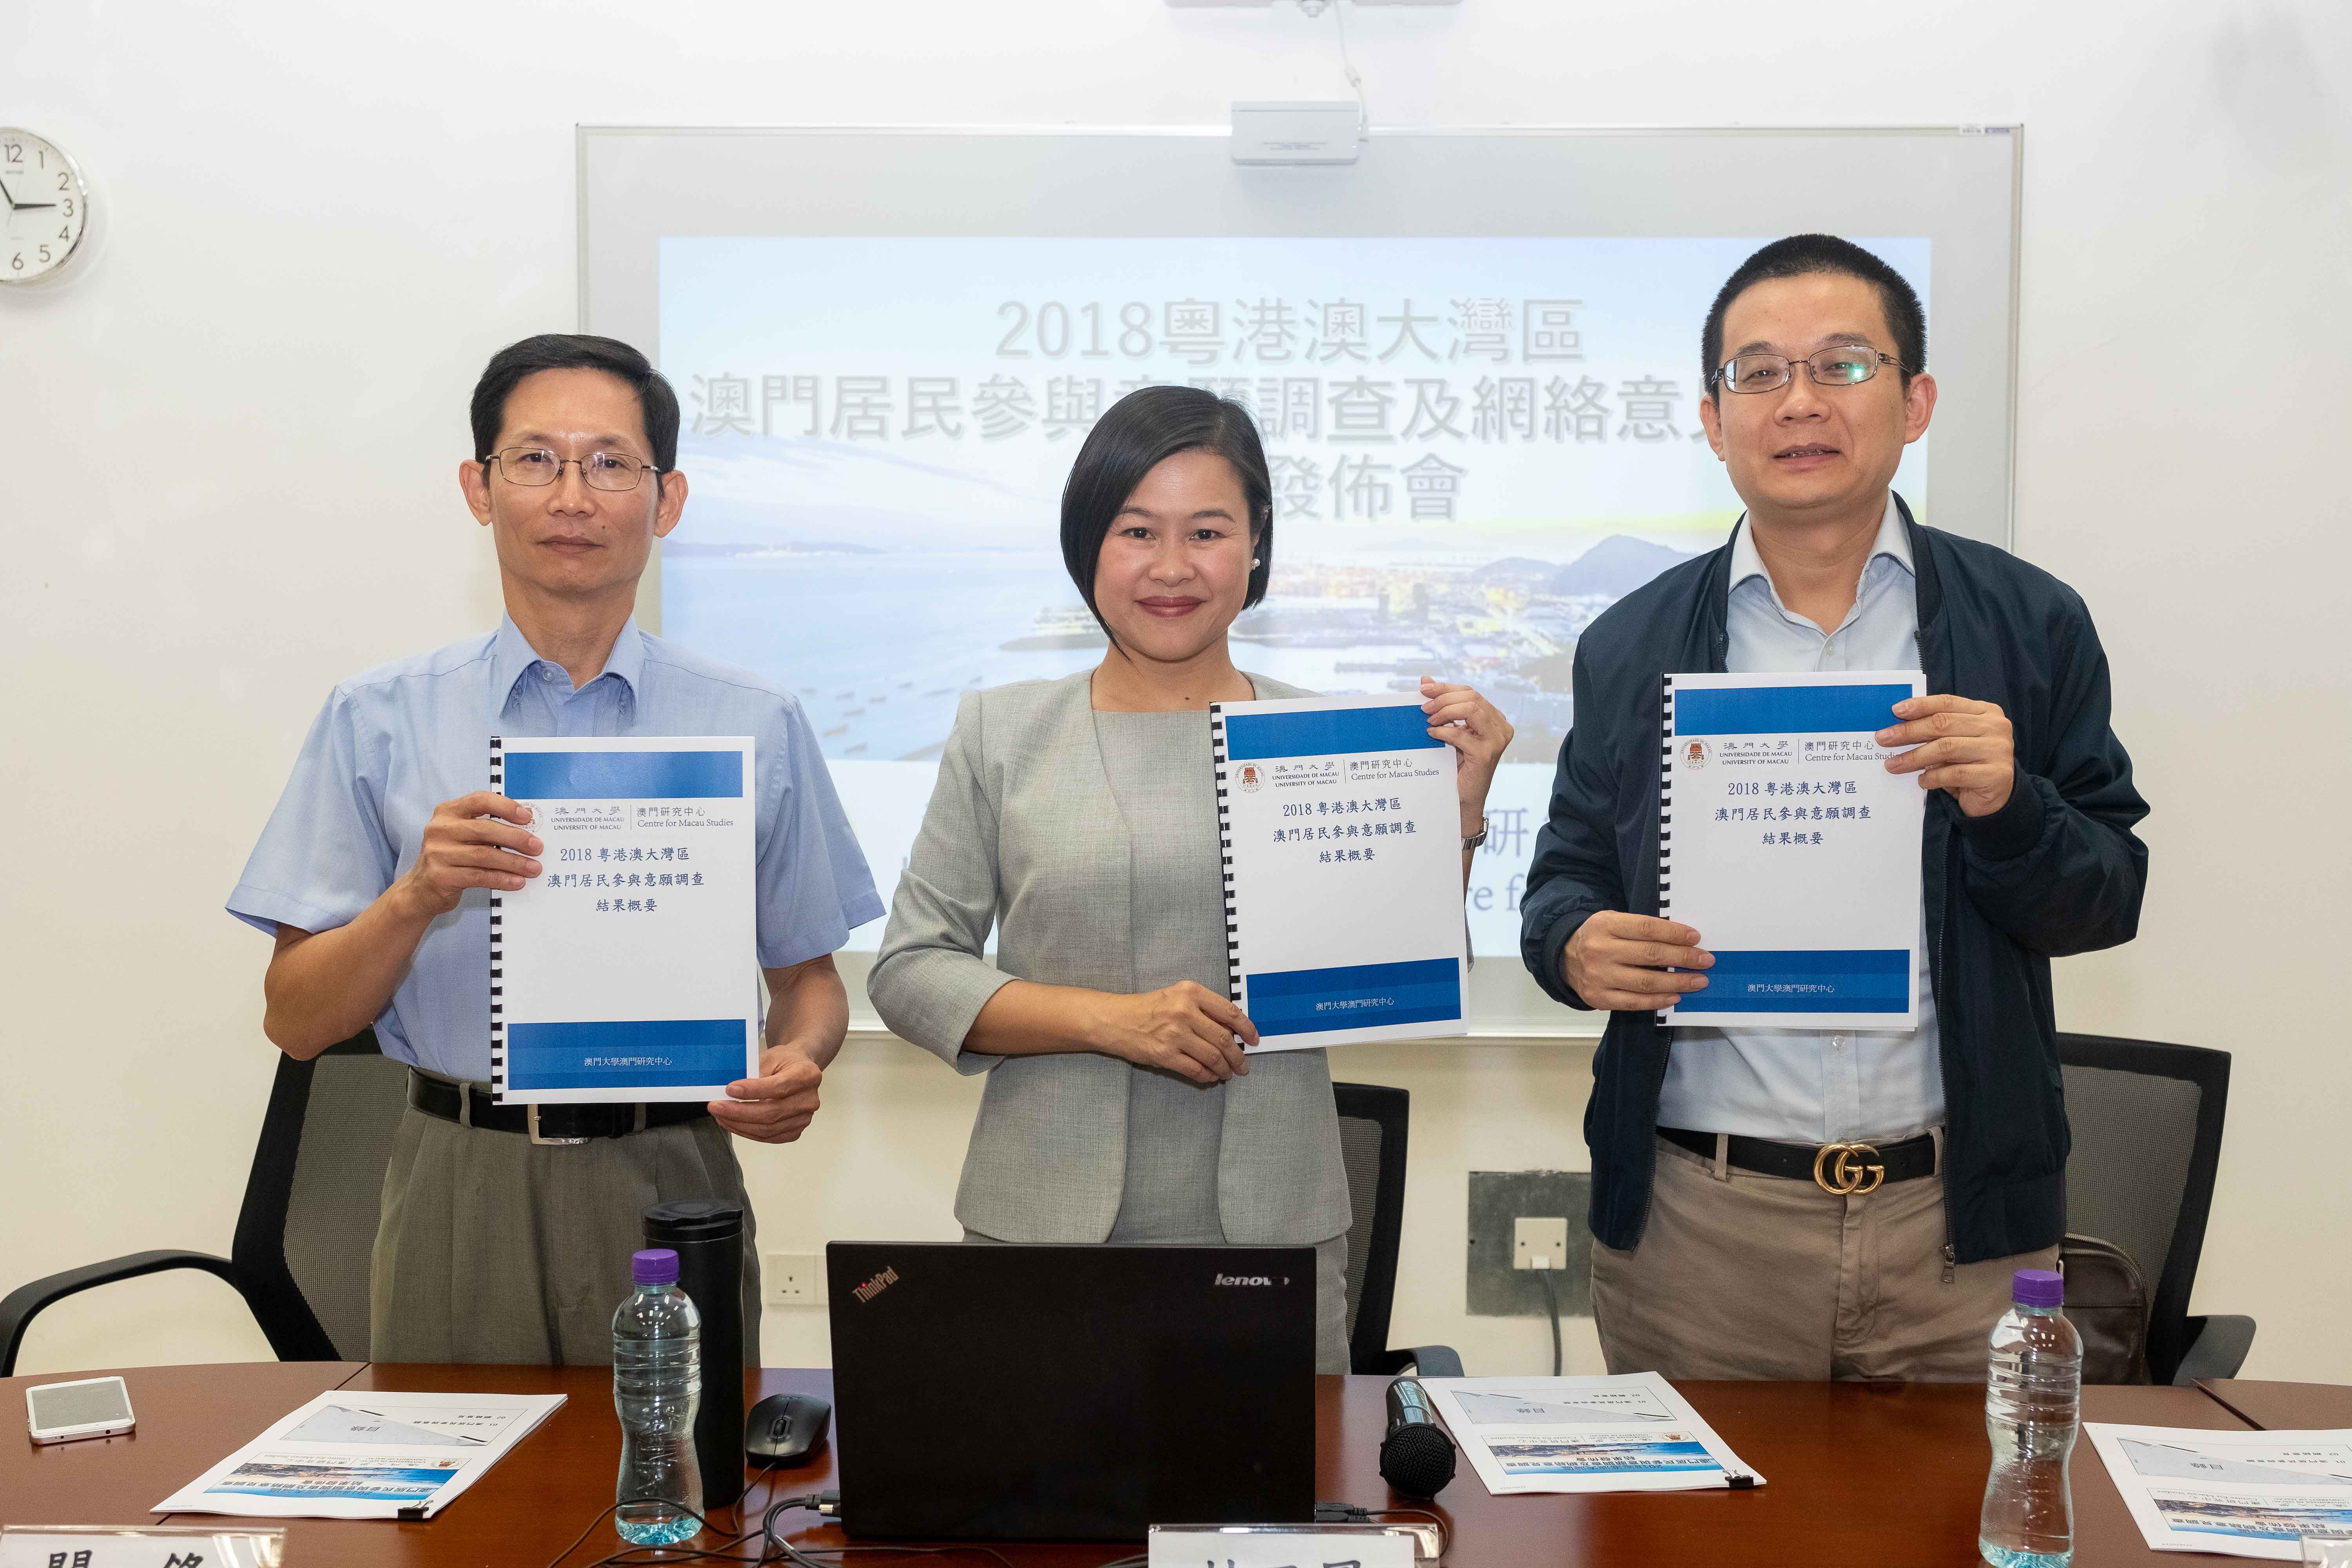 UM Centre for Macau Studies releases results of Survey of Willingness of Participation in the Guangdong-Hong Kong-Macao Greater Bay Area and Opinions on the Internet among Macao Re